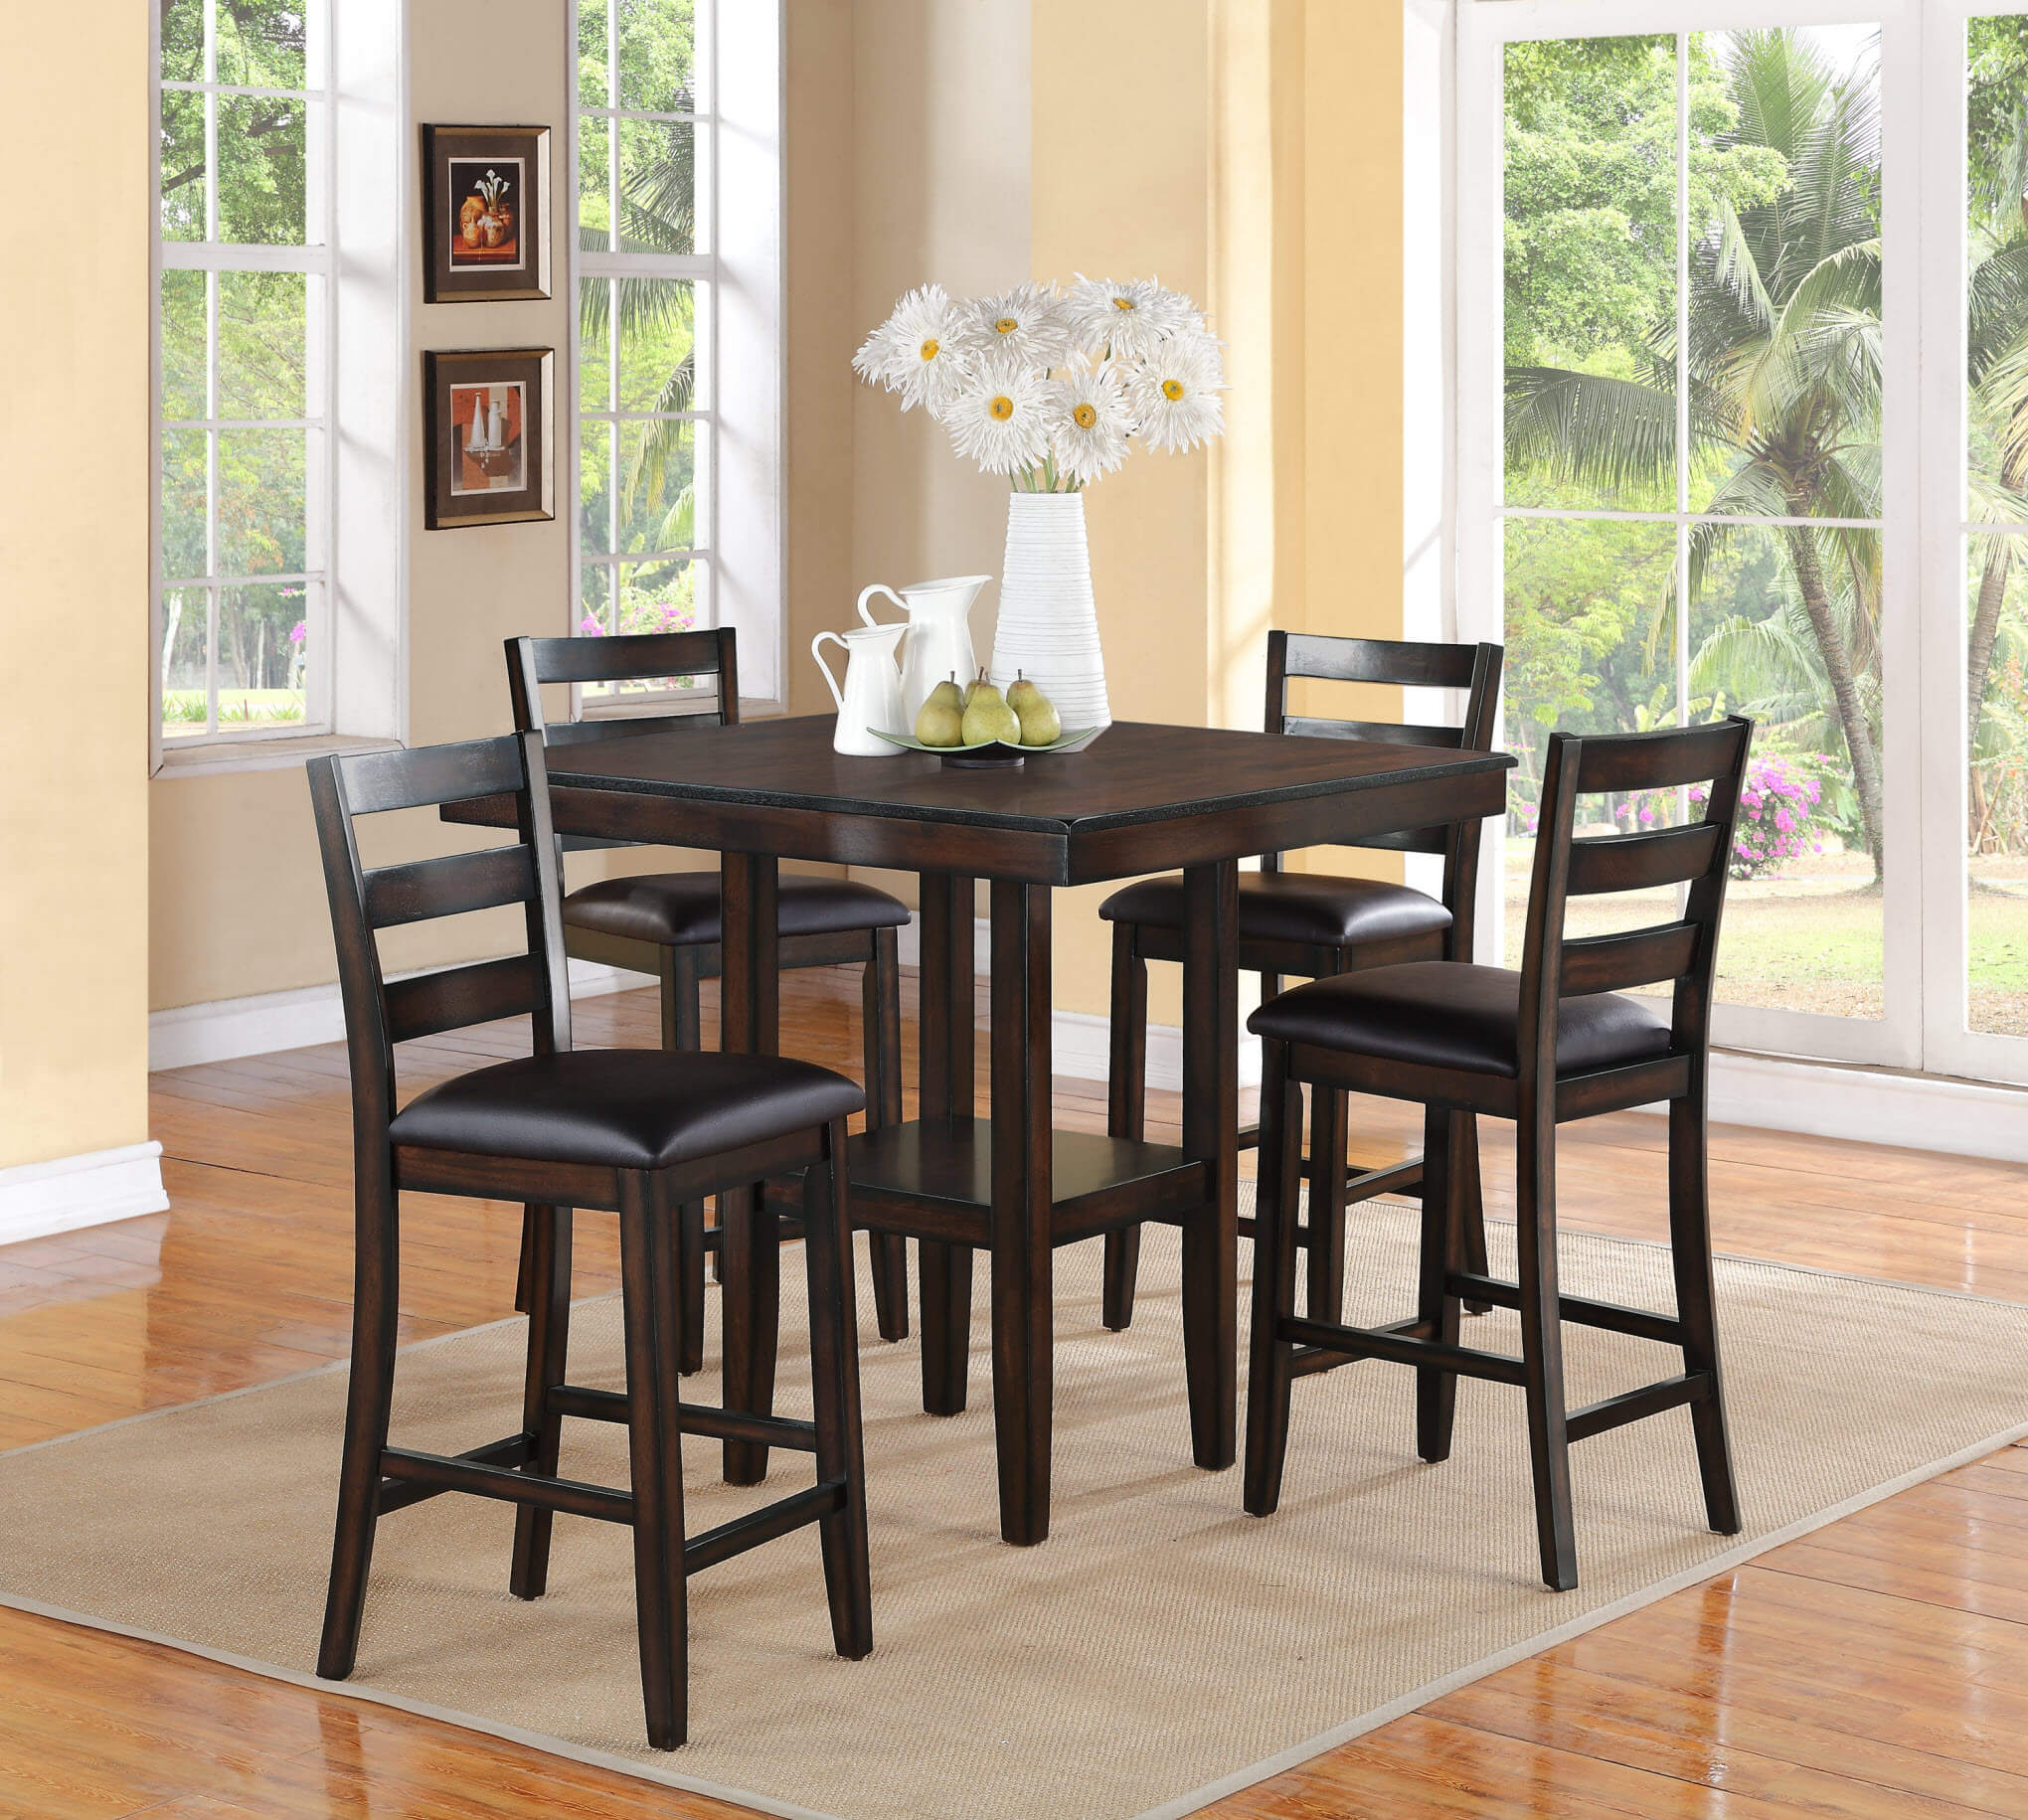 New Contemporary Style Storage Bottom Shelf Counter Ht Dining Room Table W 4 Chairs 5 Pcs Set